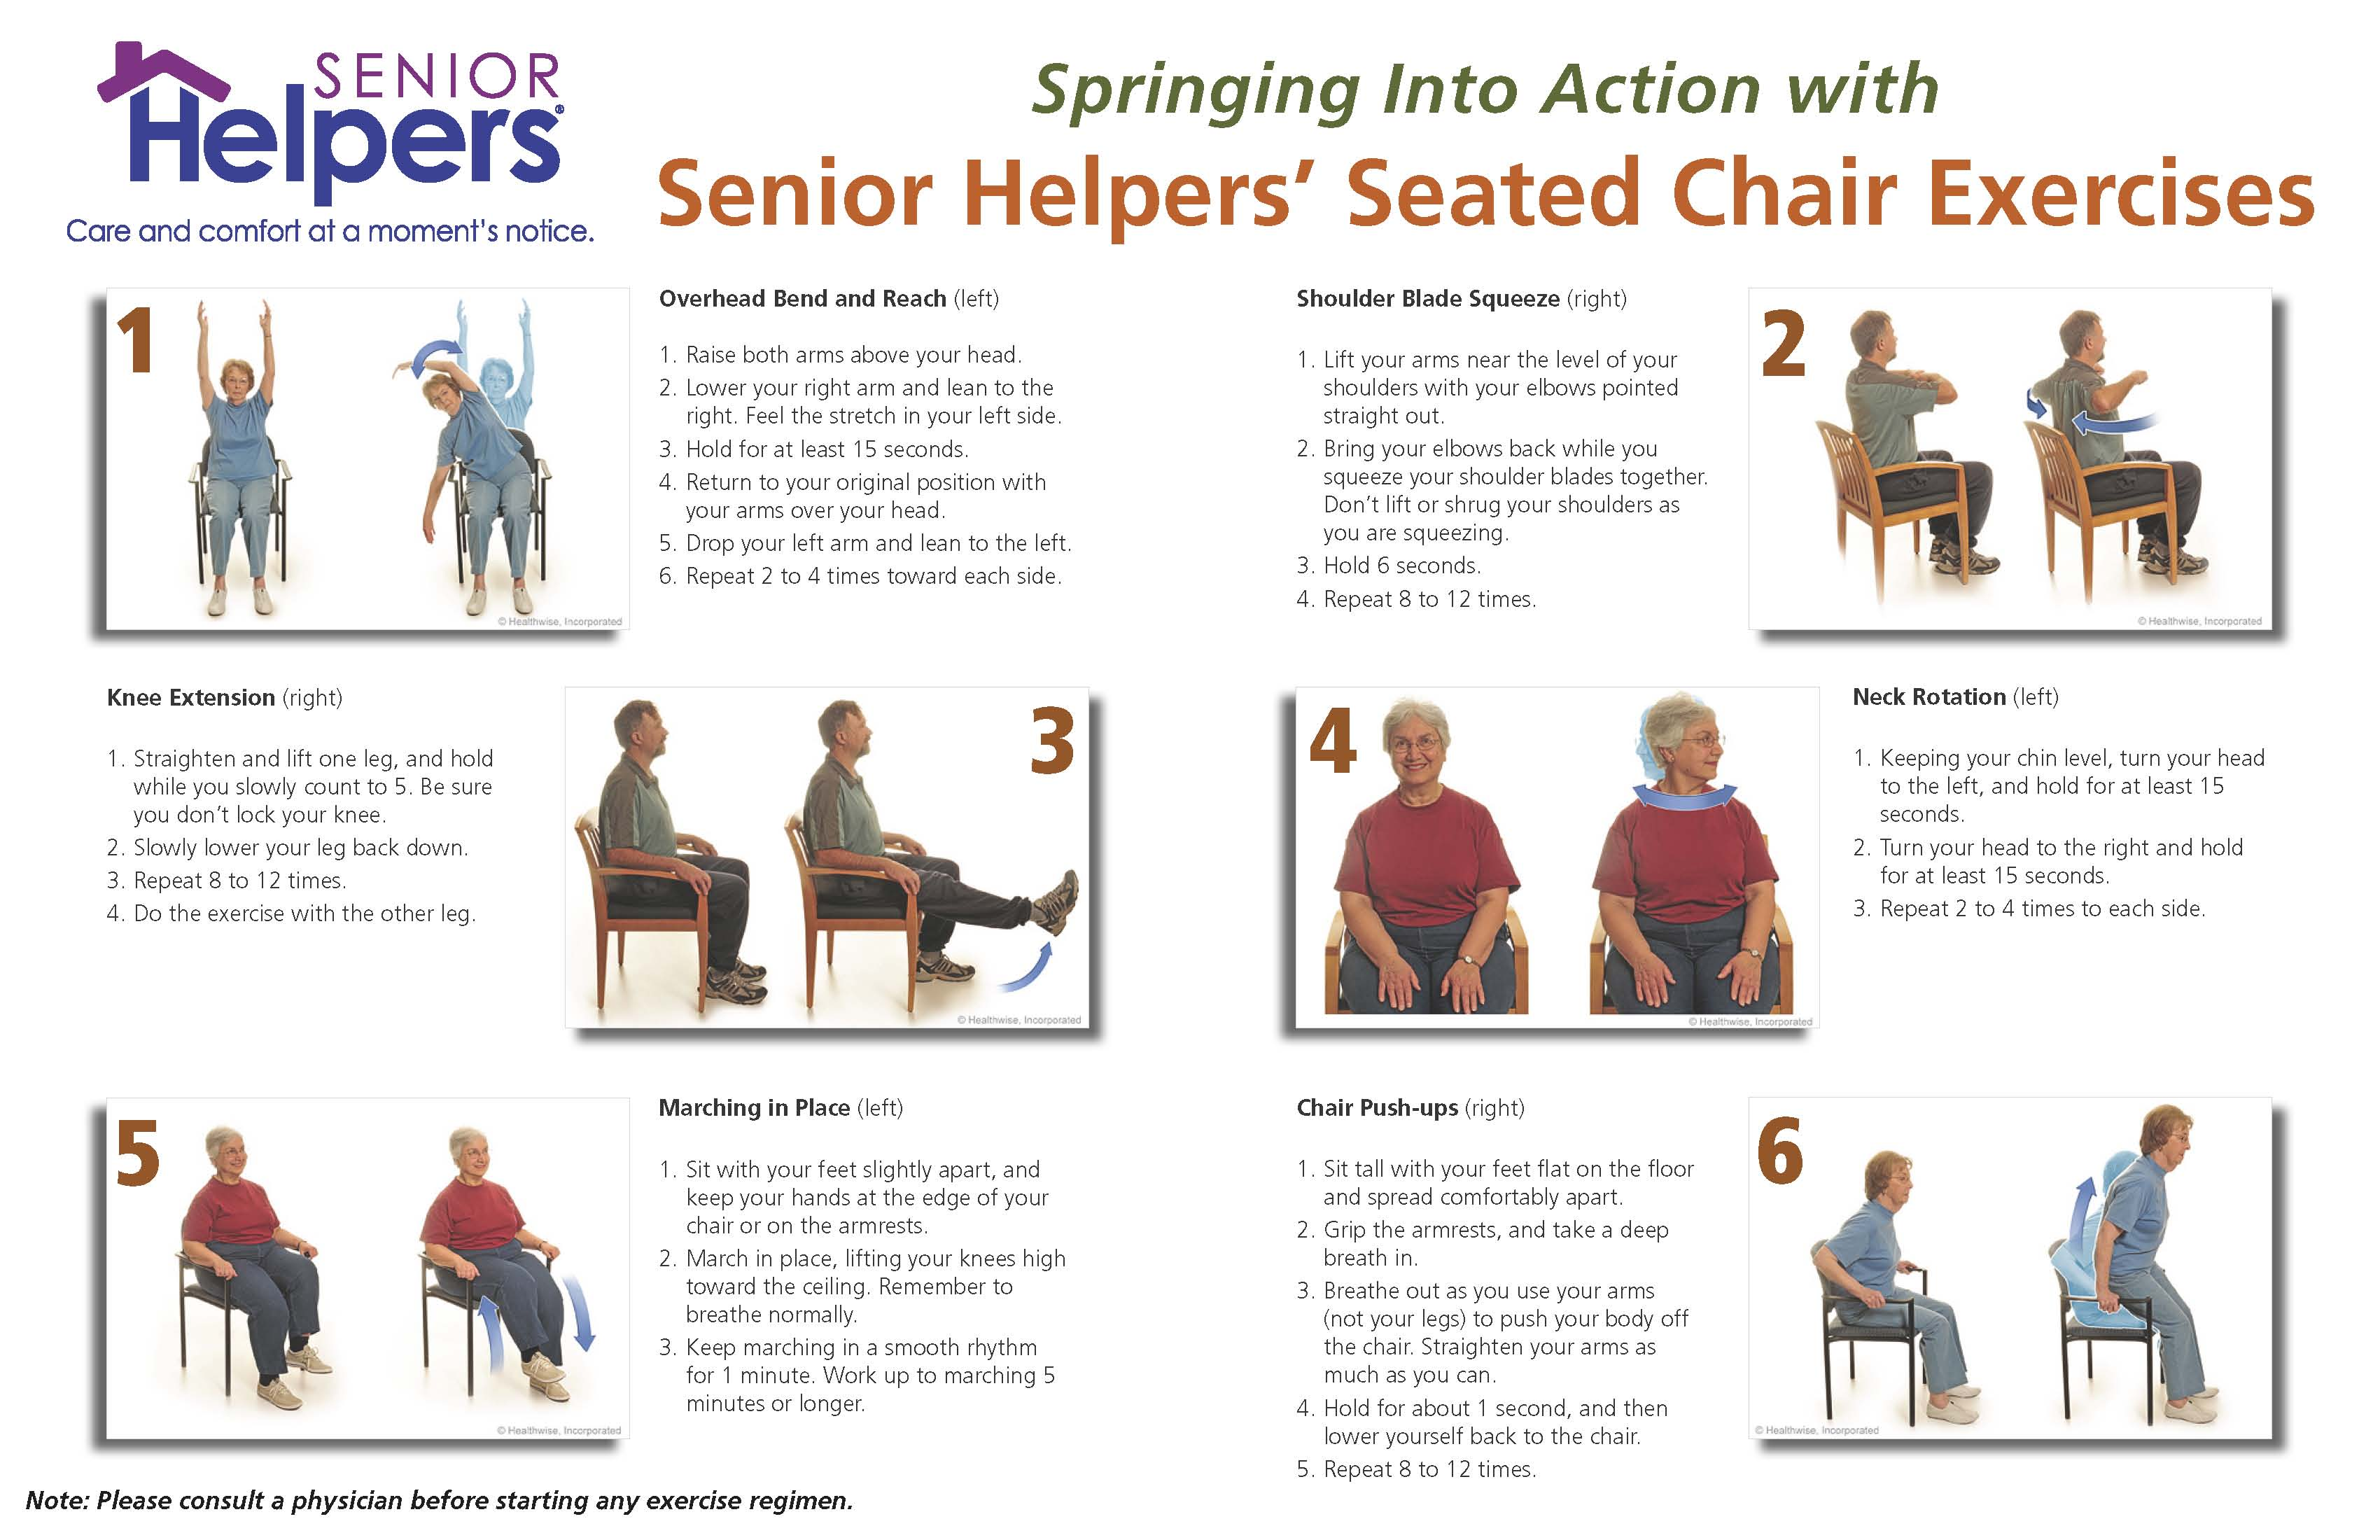 chair train for aged. chair exercise for elderly  sc 1 th 180 & Chair Exercise For Elderly | Top Blog for Chair Review